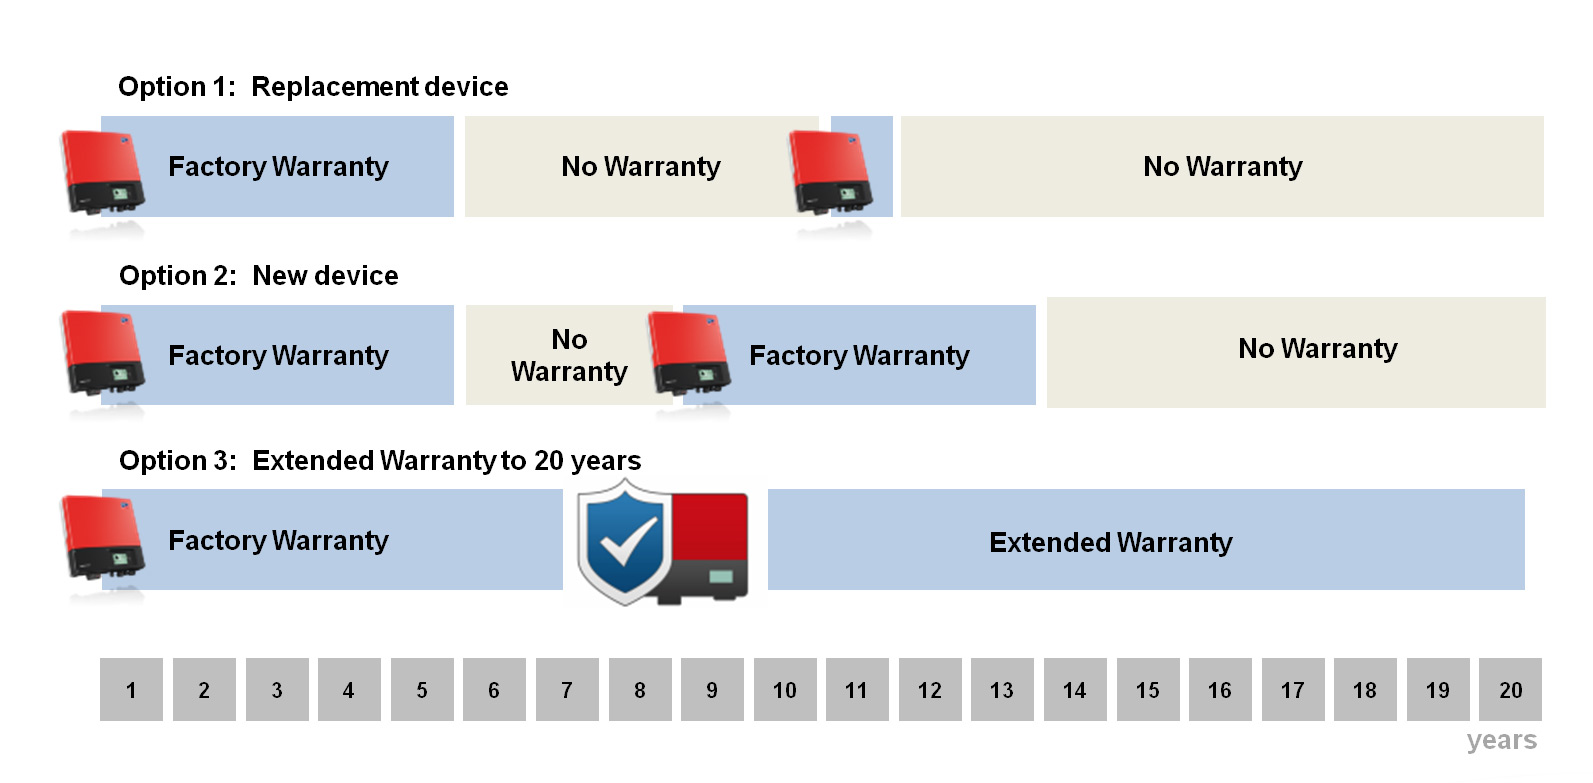 All SMA inverters come with a five-year factory warranty, during which your system is protected. In example 1, a malfunction occurs in the inverter's 11th year of operation. You opt for an SMA replacement inverter that comes with a one-year warranty. After that, your system is once again unprotected. Example 2 shows a defect in the 8th year of operation. You purchase a new SMA inverter, which comes with a new five-year warranty. Once this period has expired, the PV system is no longer protected. However, example 3 shows that a 20-year Comfort extended warranty was purchased at a reasonable price to cover the system's entire service life. And no unexpected costs were incurred.